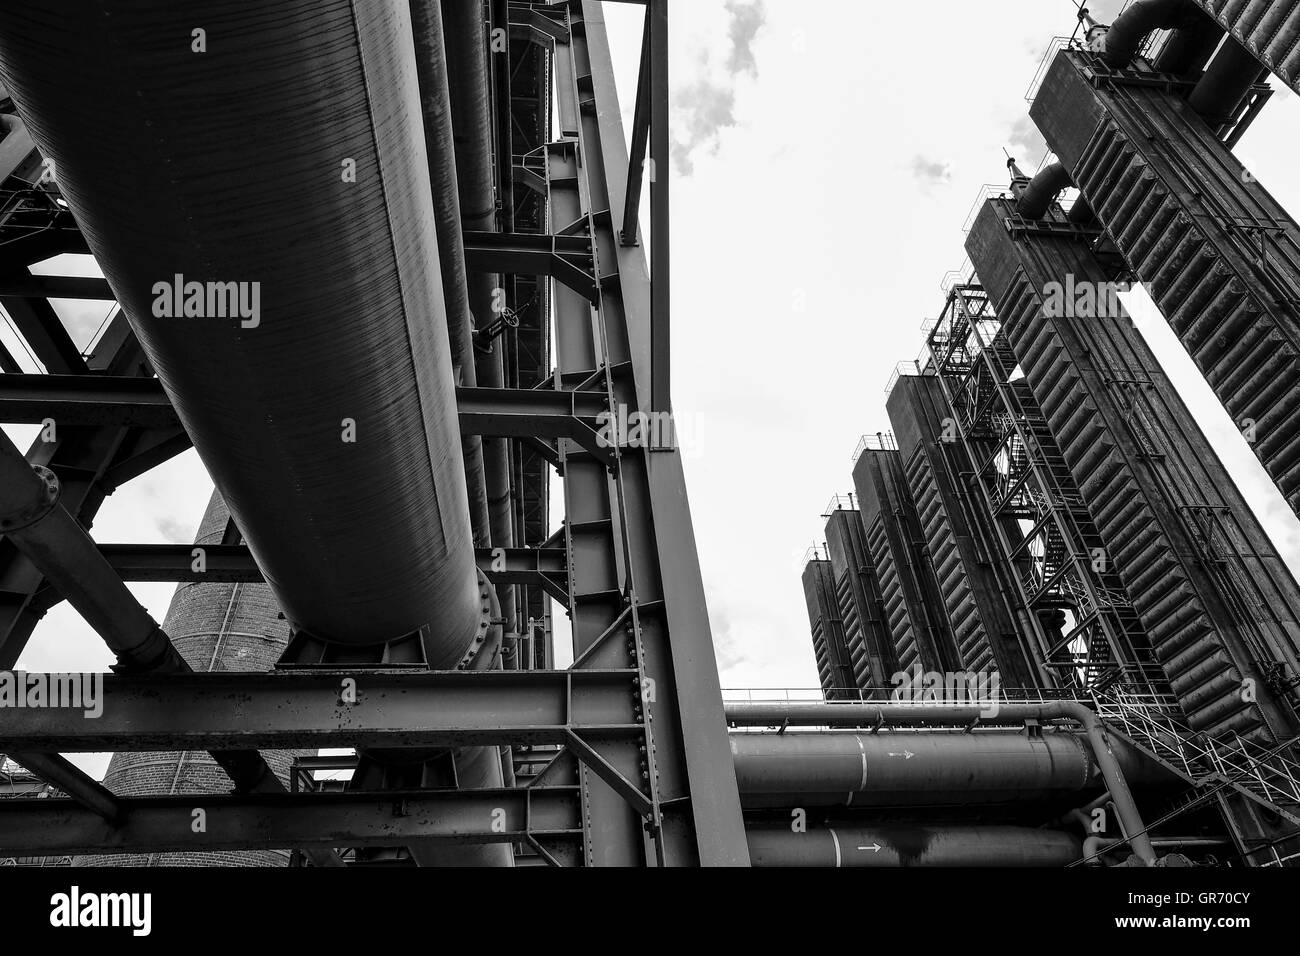 Zeche Zollverein - Stock Image